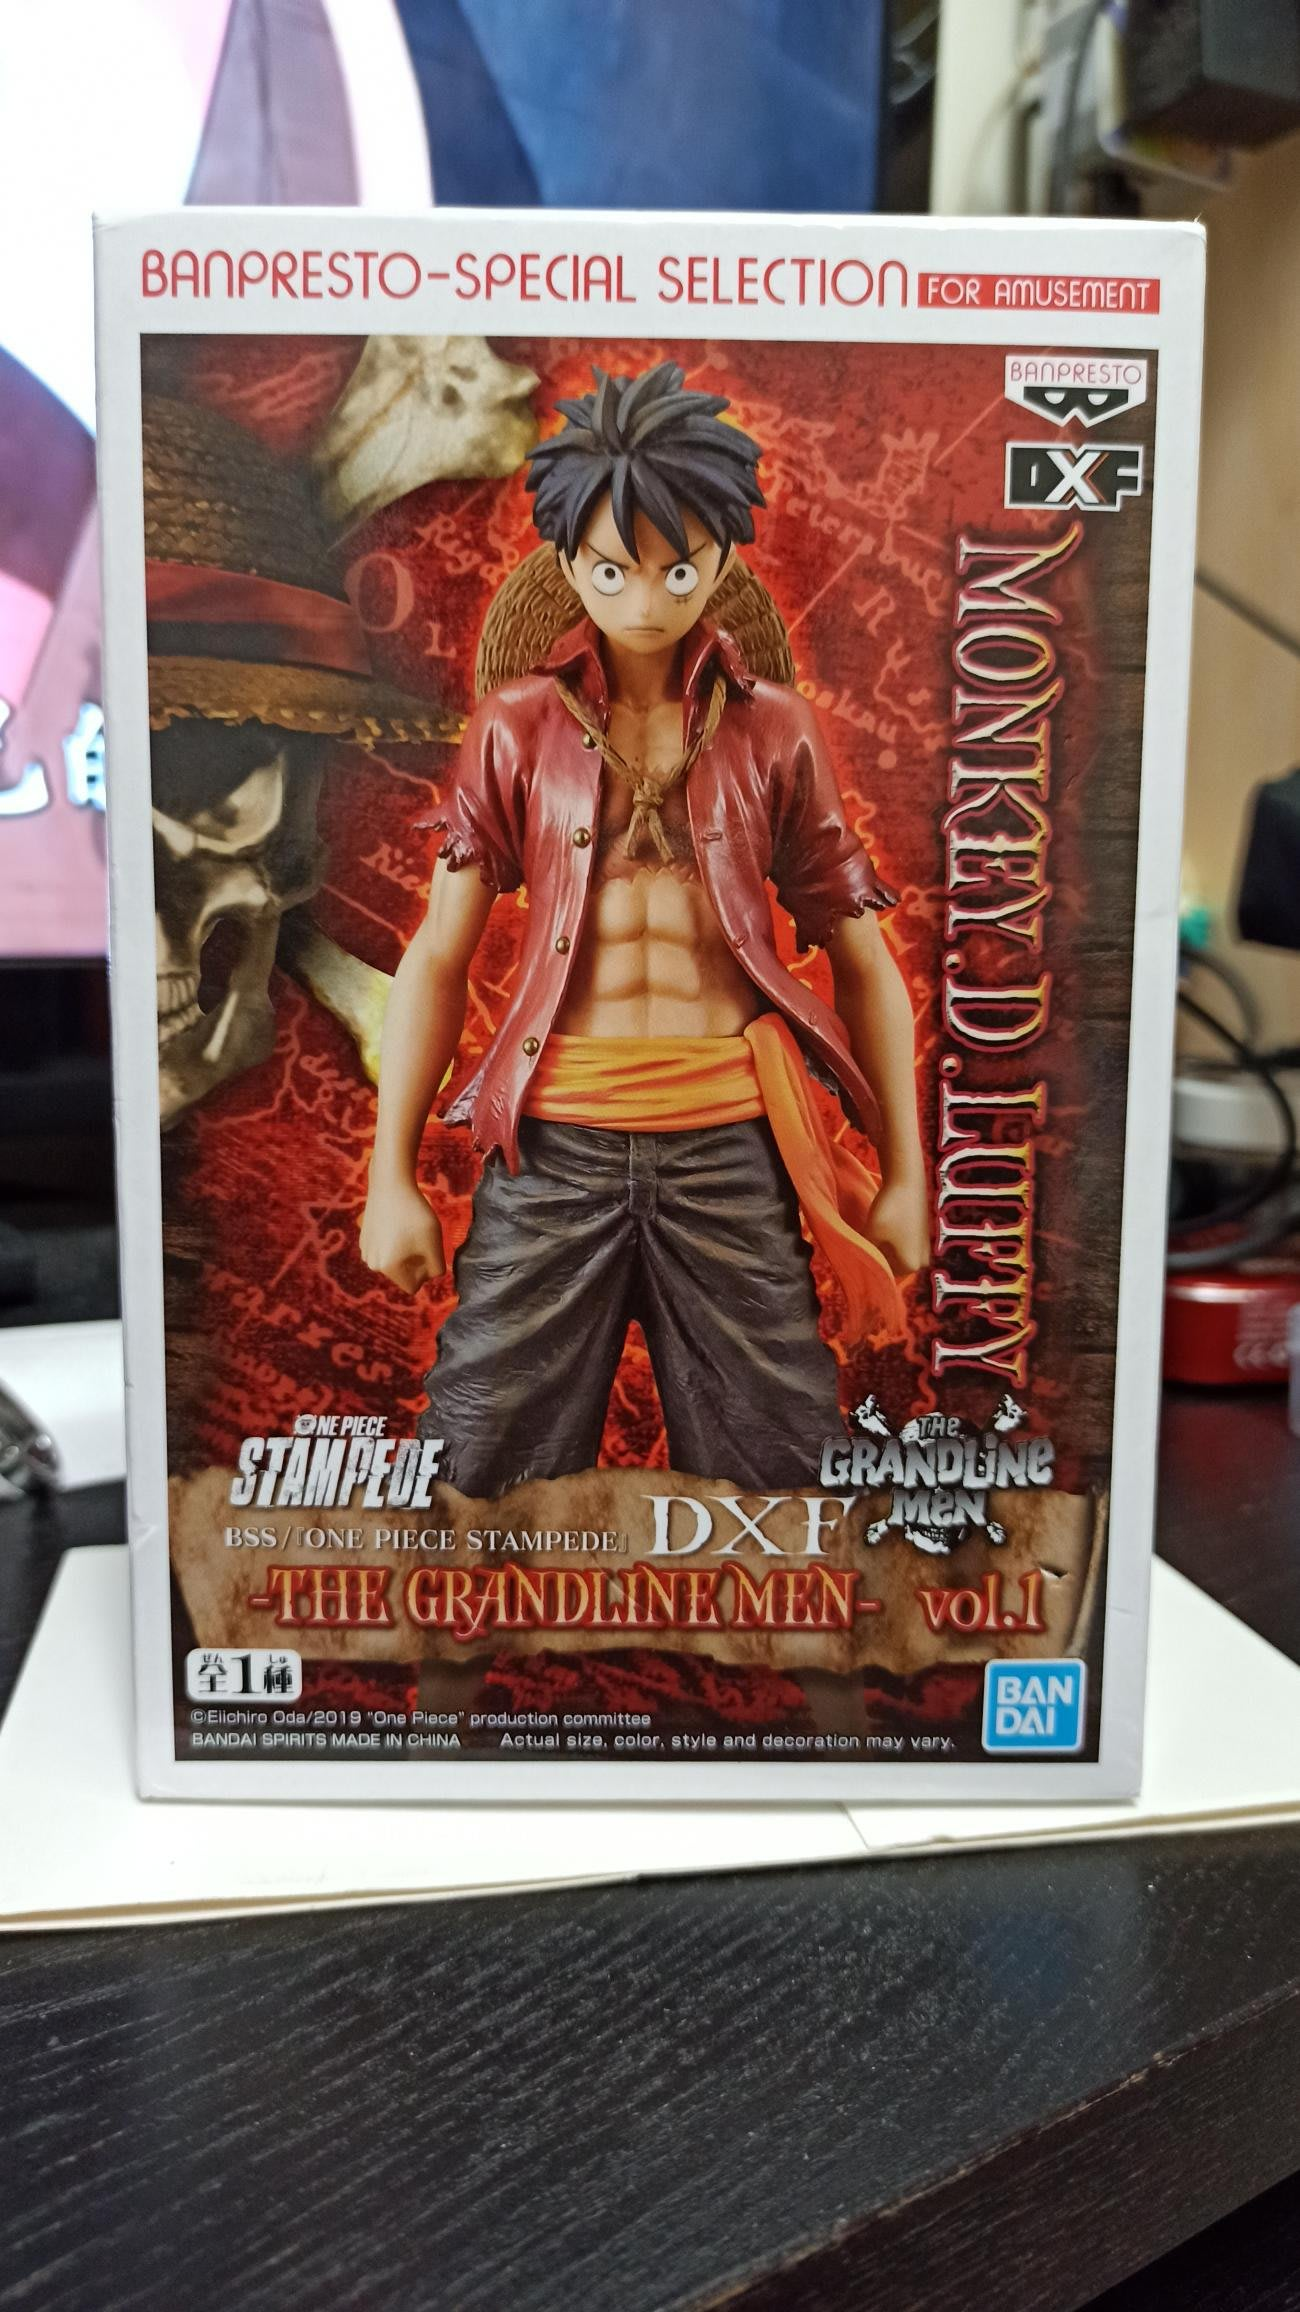 ONEPIECE DXF SPECIAL SELECTION FOR AMUSEMENT代理版 劇場版 魯夫(340含運)